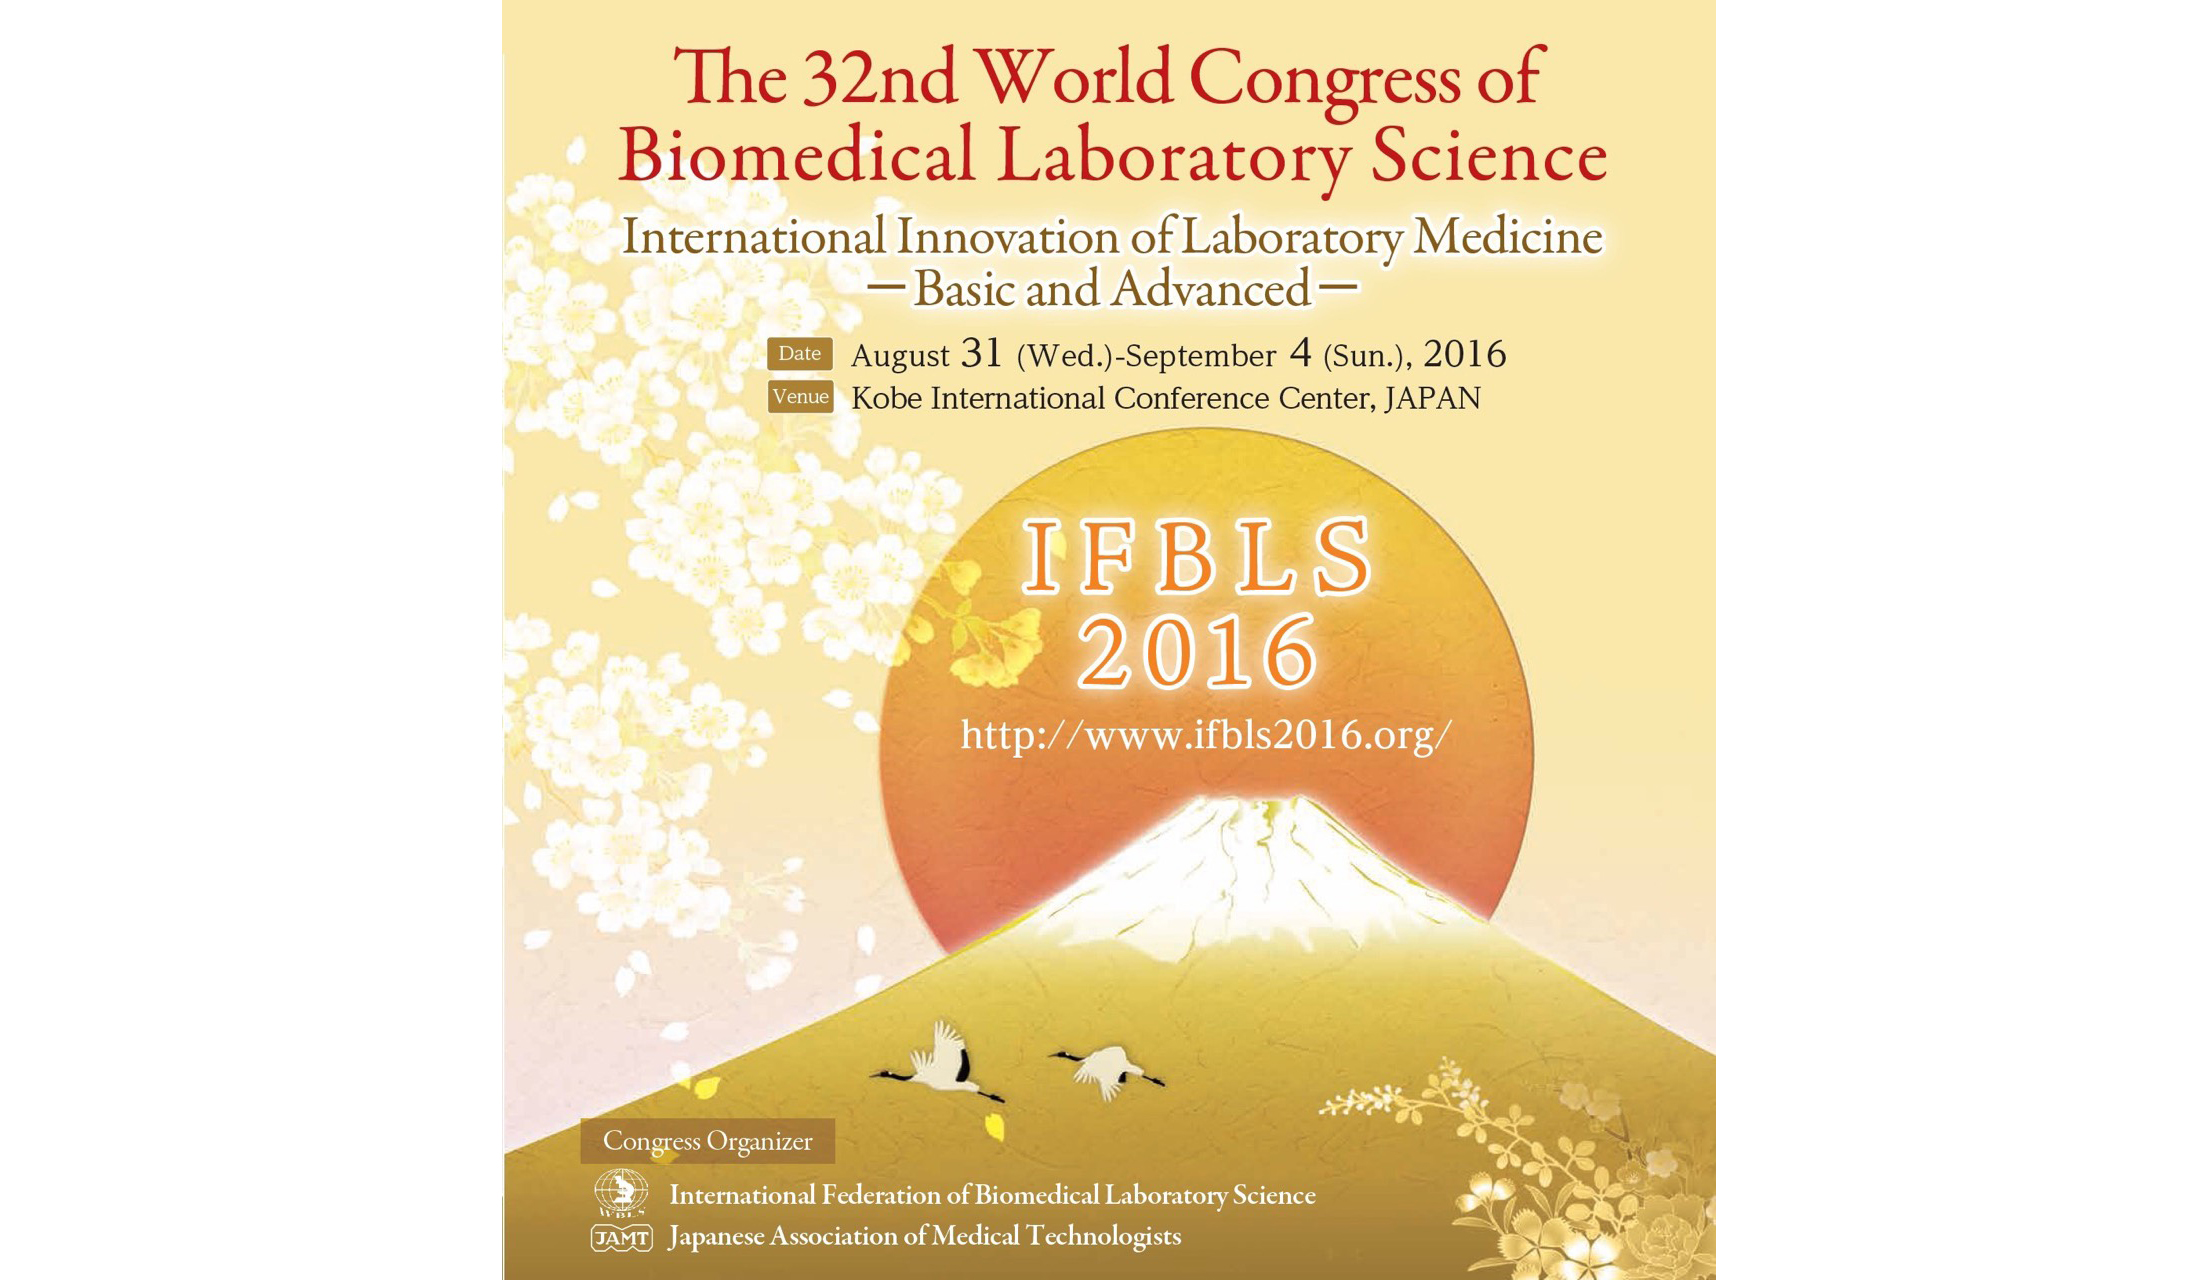 32nd World Congress of Biomedical Laboratory Science, Aug 31 - Sep 4, 2016, Kobe, Japan,